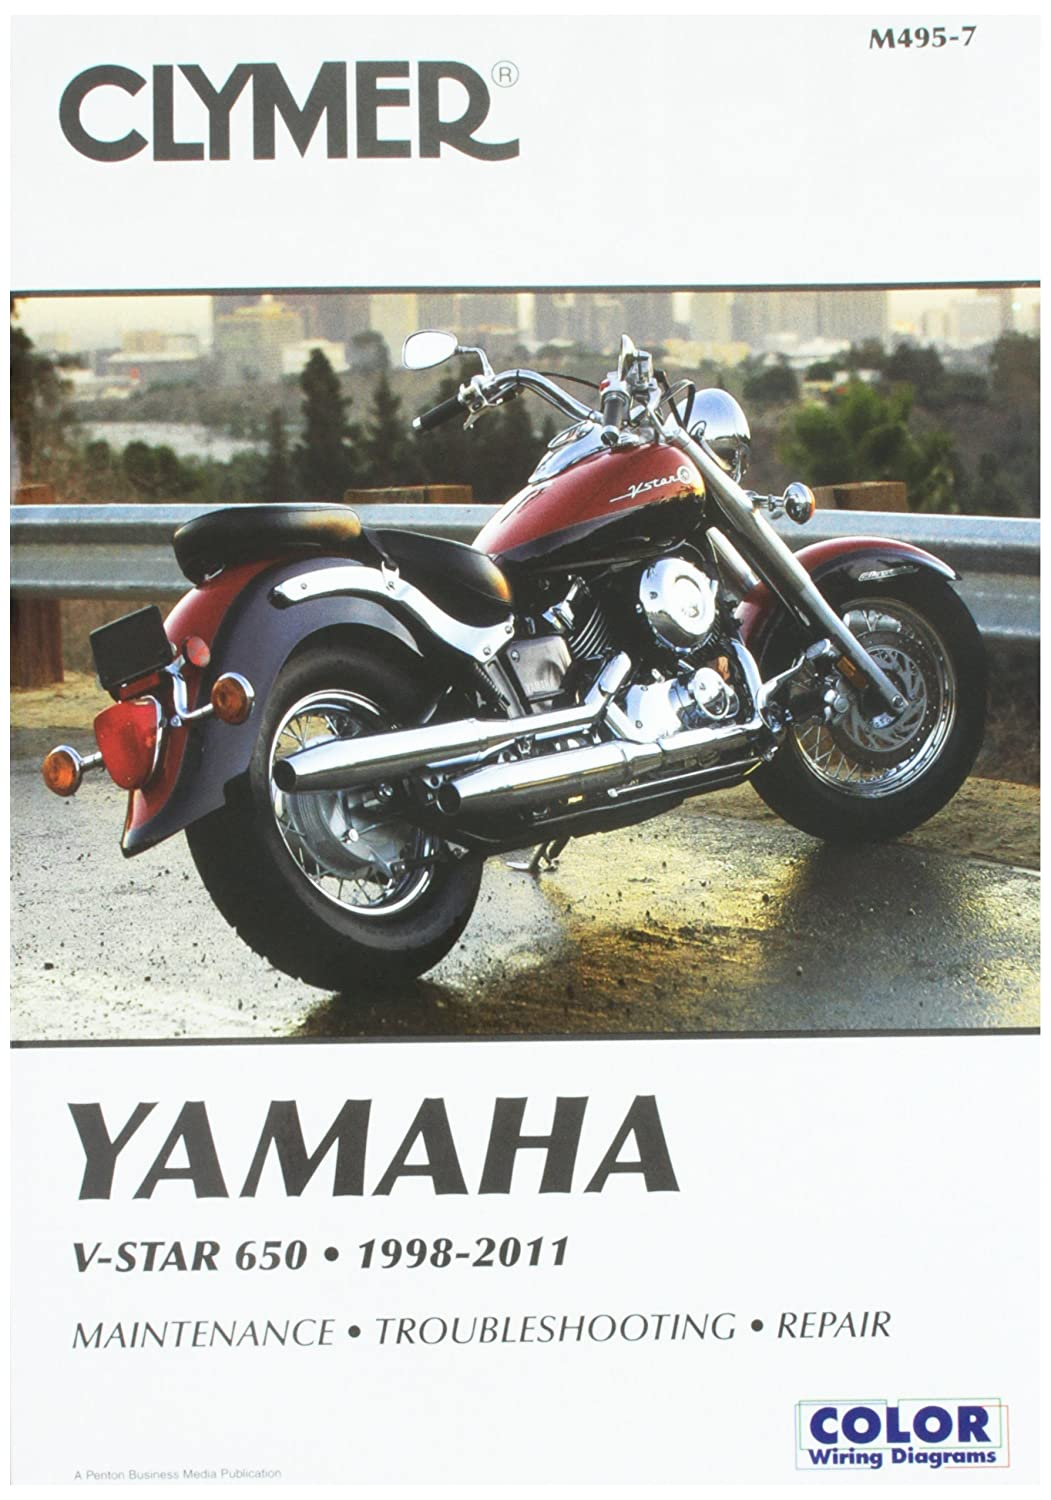 81wn7OvCz7L._SL1500_ amazon com clymer yamaha v star 650 (1998 2011) ronwright Kawasaki KFX 700 Wiring Diagram at creativeand.co